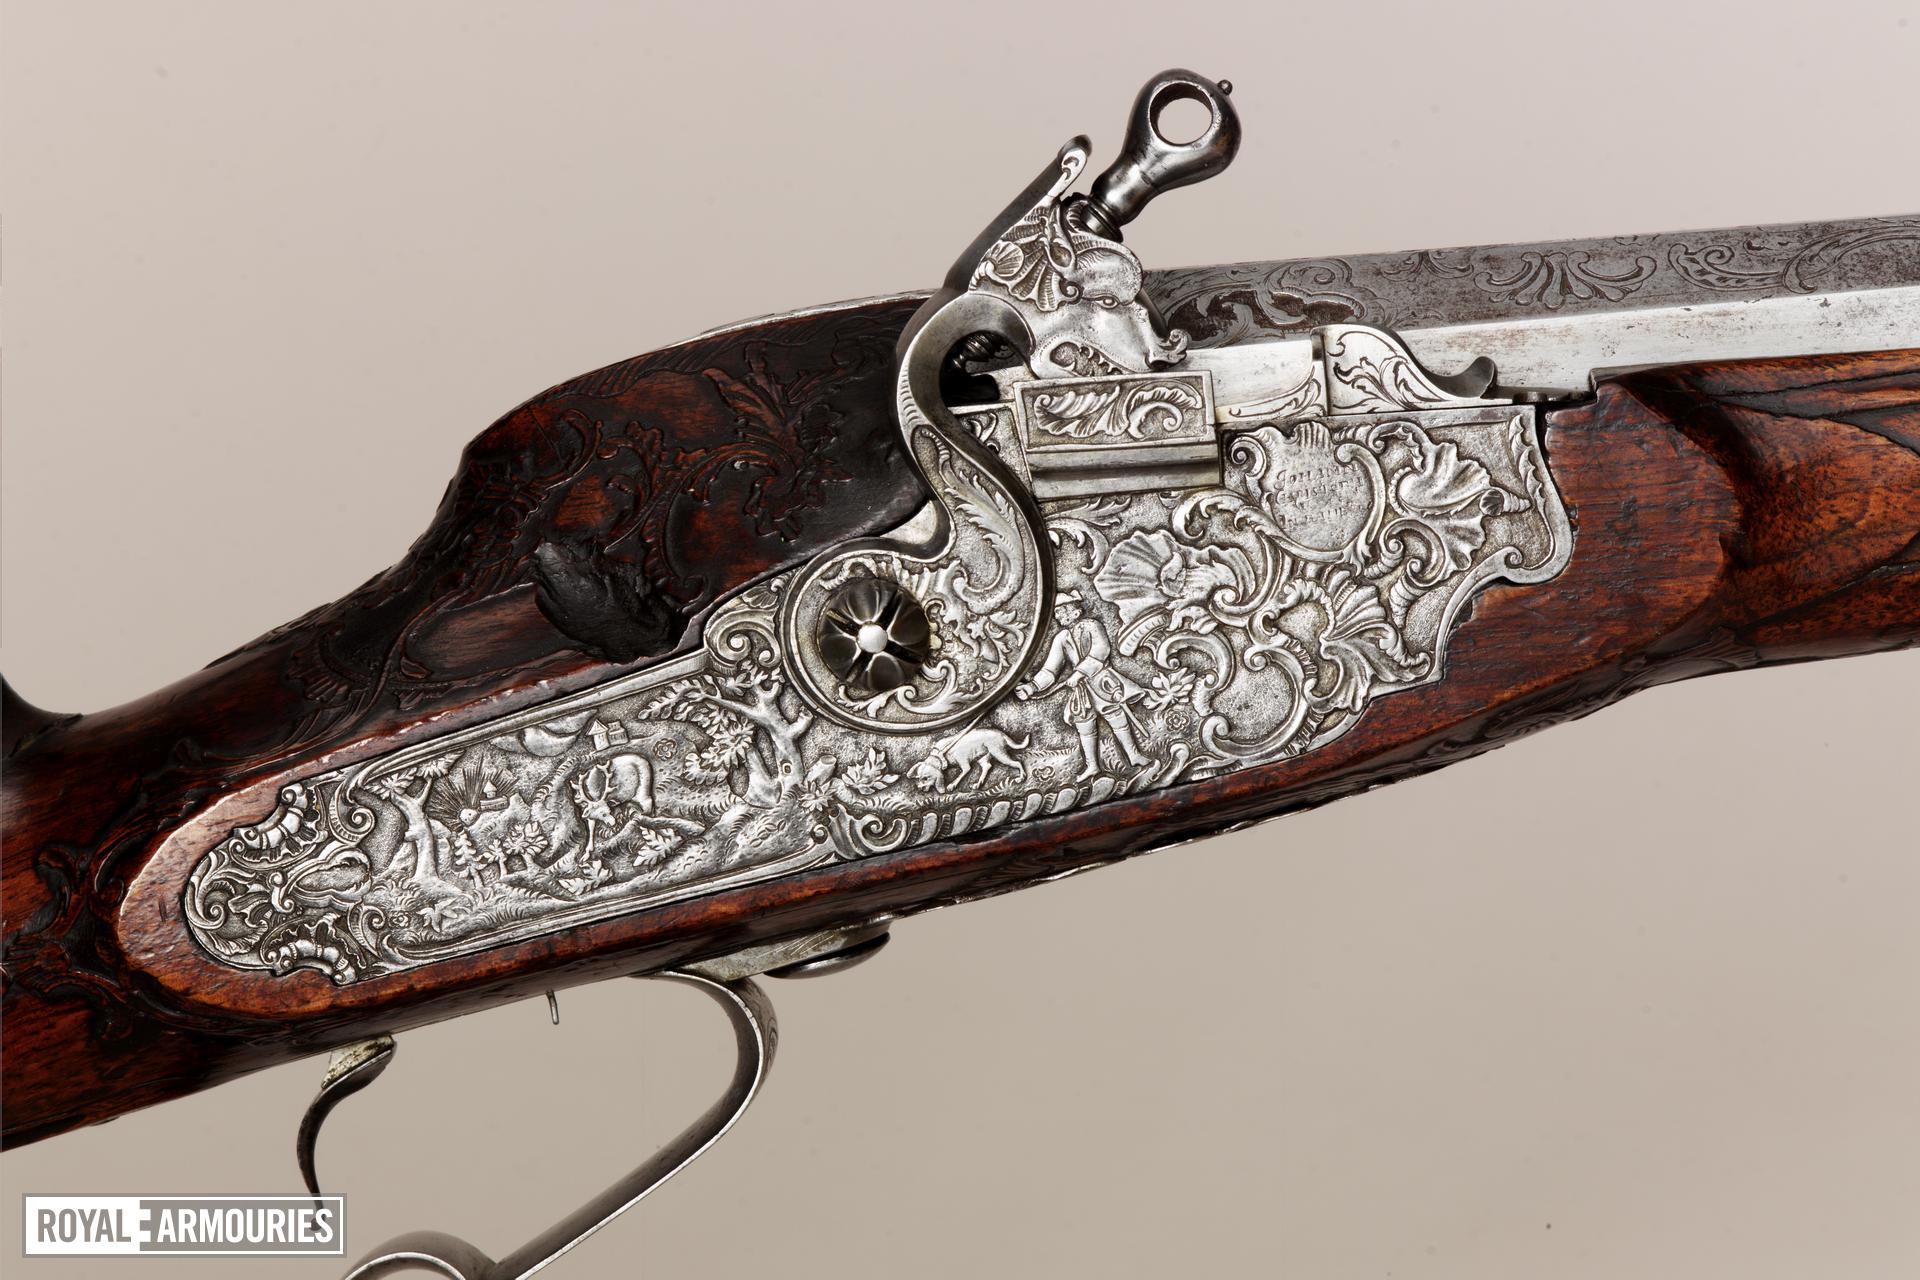 Wheellock muzzle-loading rifle - By Johann Cristoph Waas